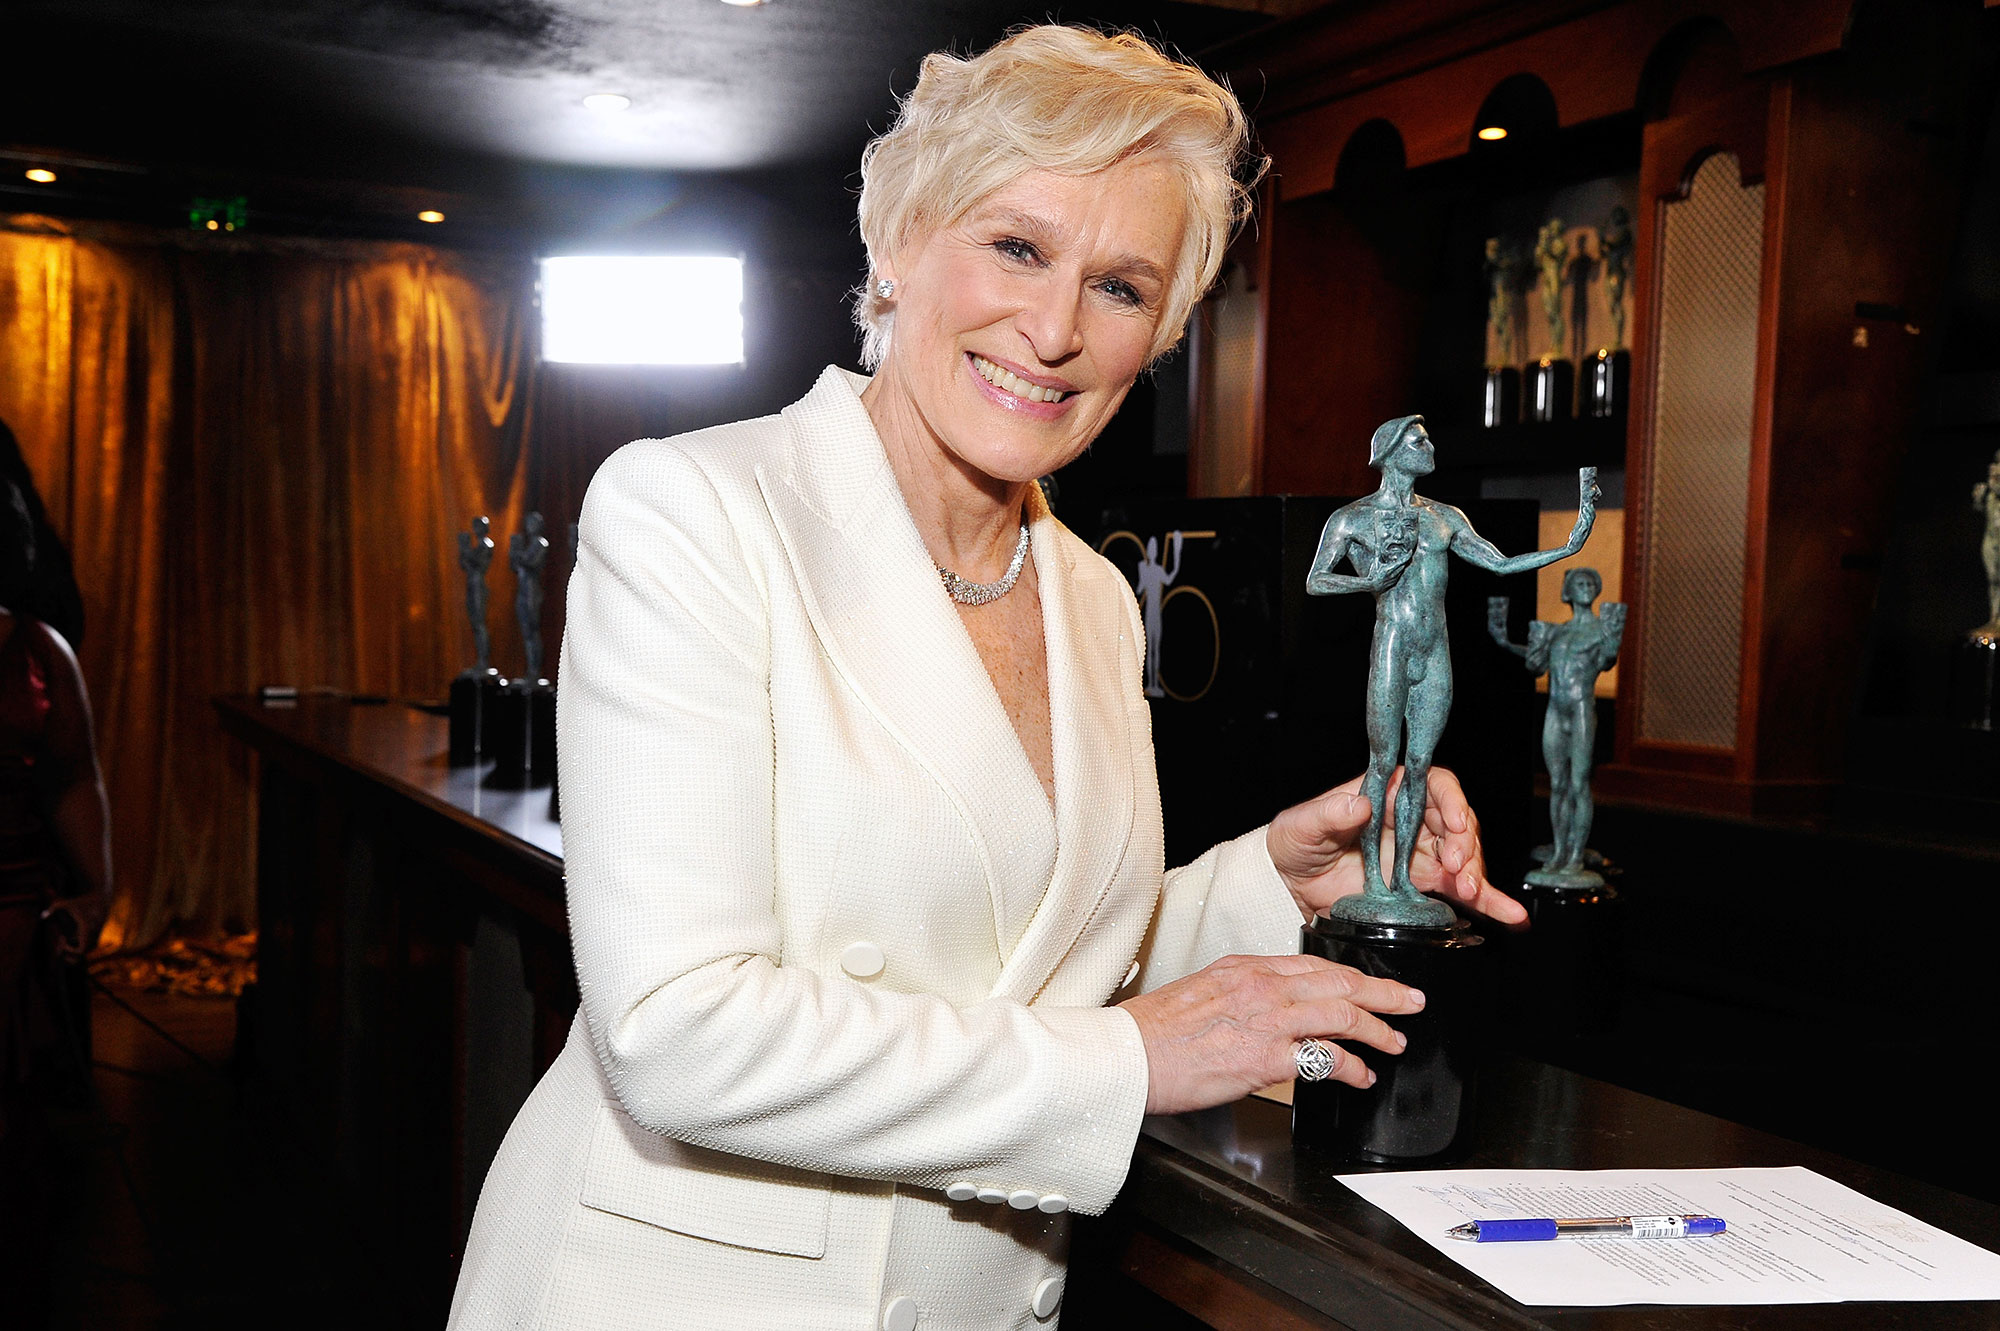 Glenn Close Oscars Rituals Grandmothers Ring - Glenn Close attends the 25th Annual Screen Actors Guild Awards at The Shrine Auditorium on January 27, 2019 in Los Angeles